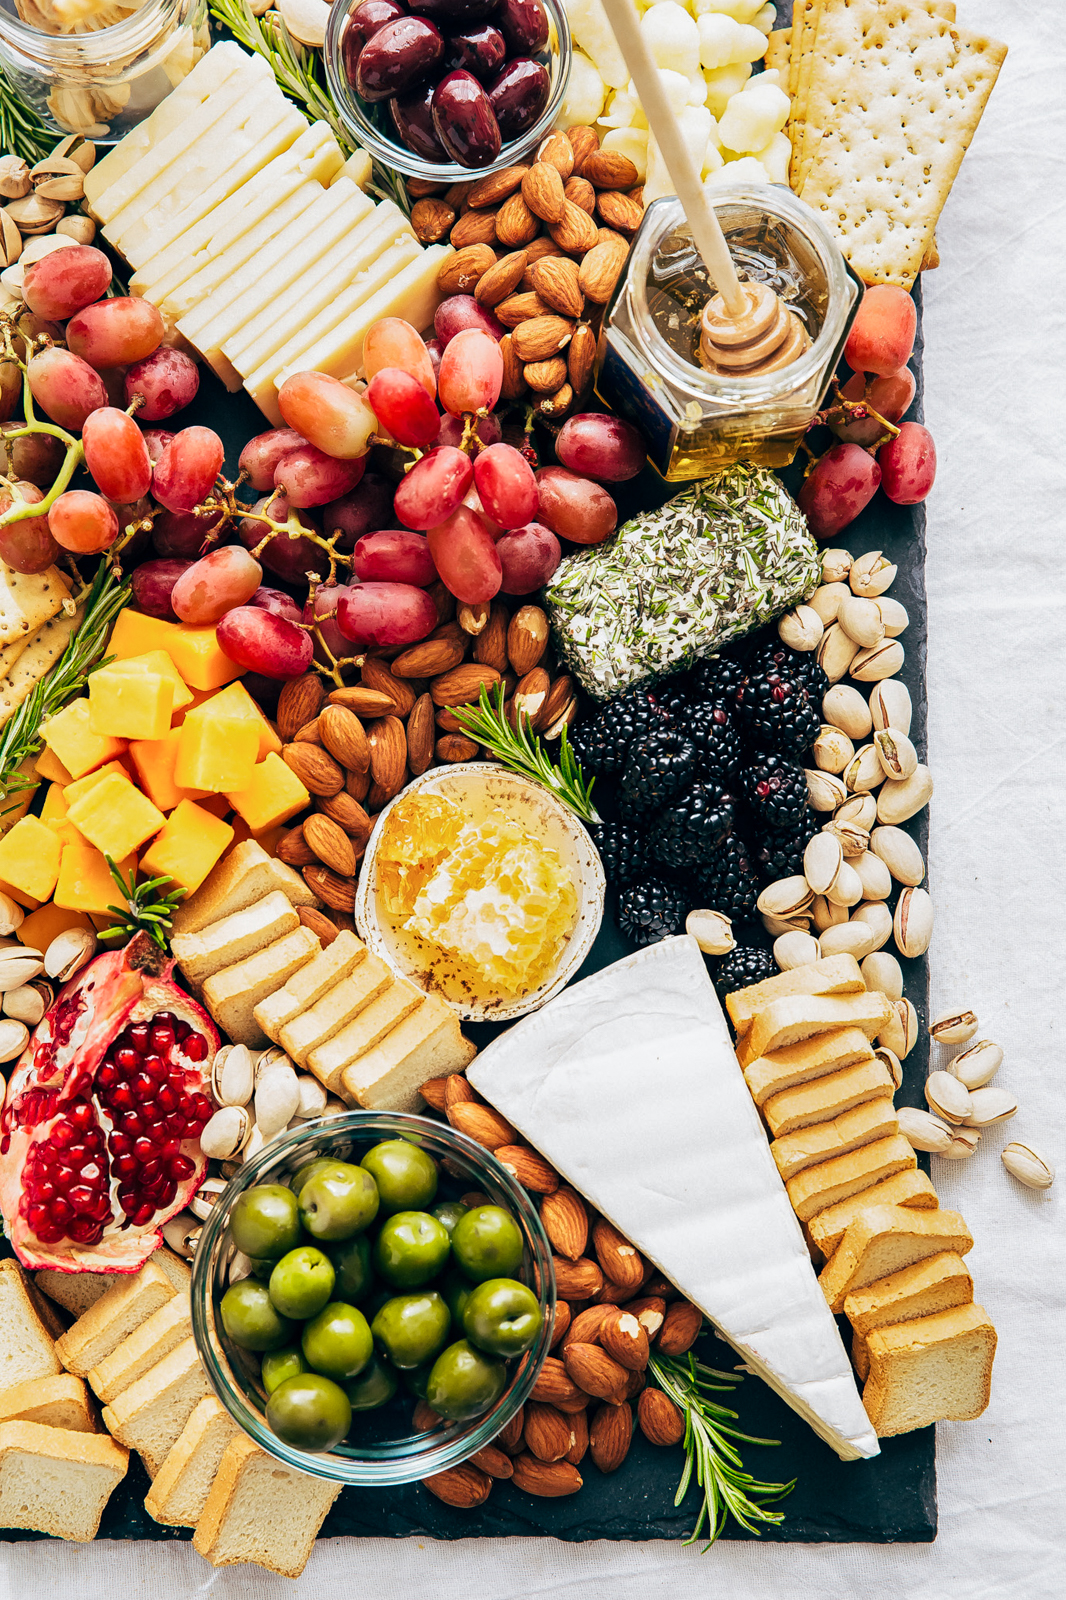 various cheeses, fruits, nuts, and honey on a black cheese board